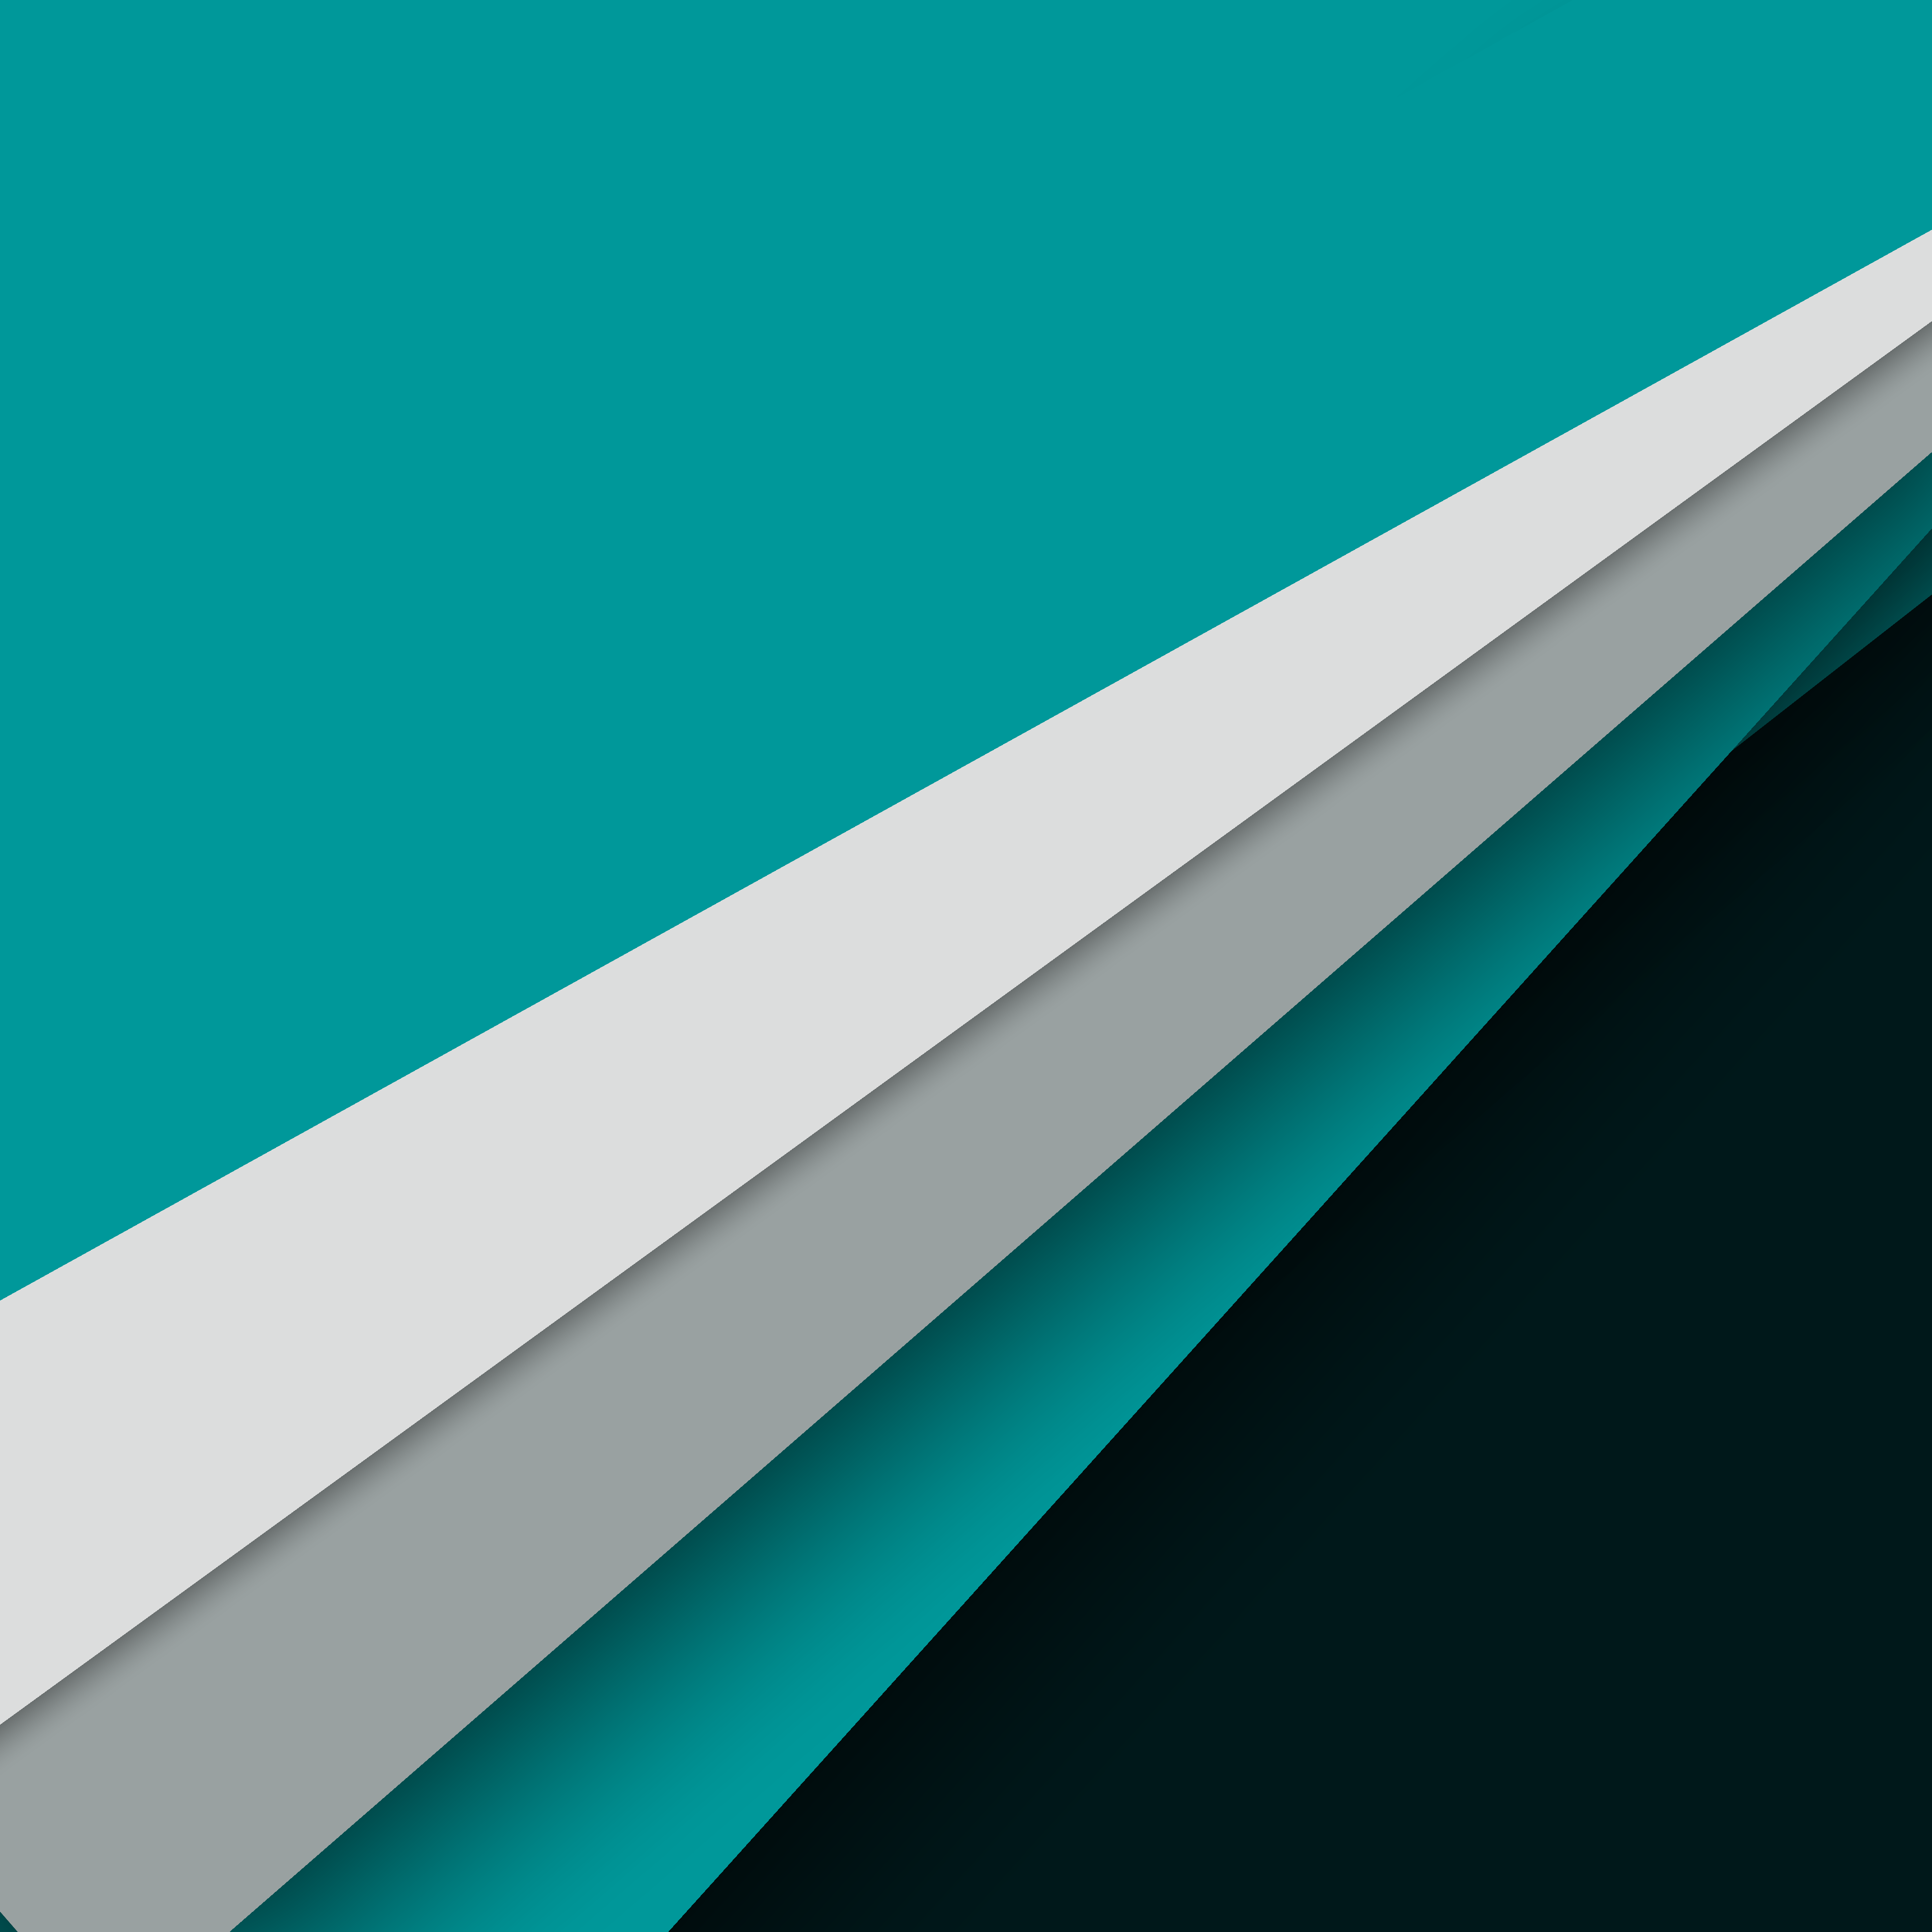 android material design wallpapers 13